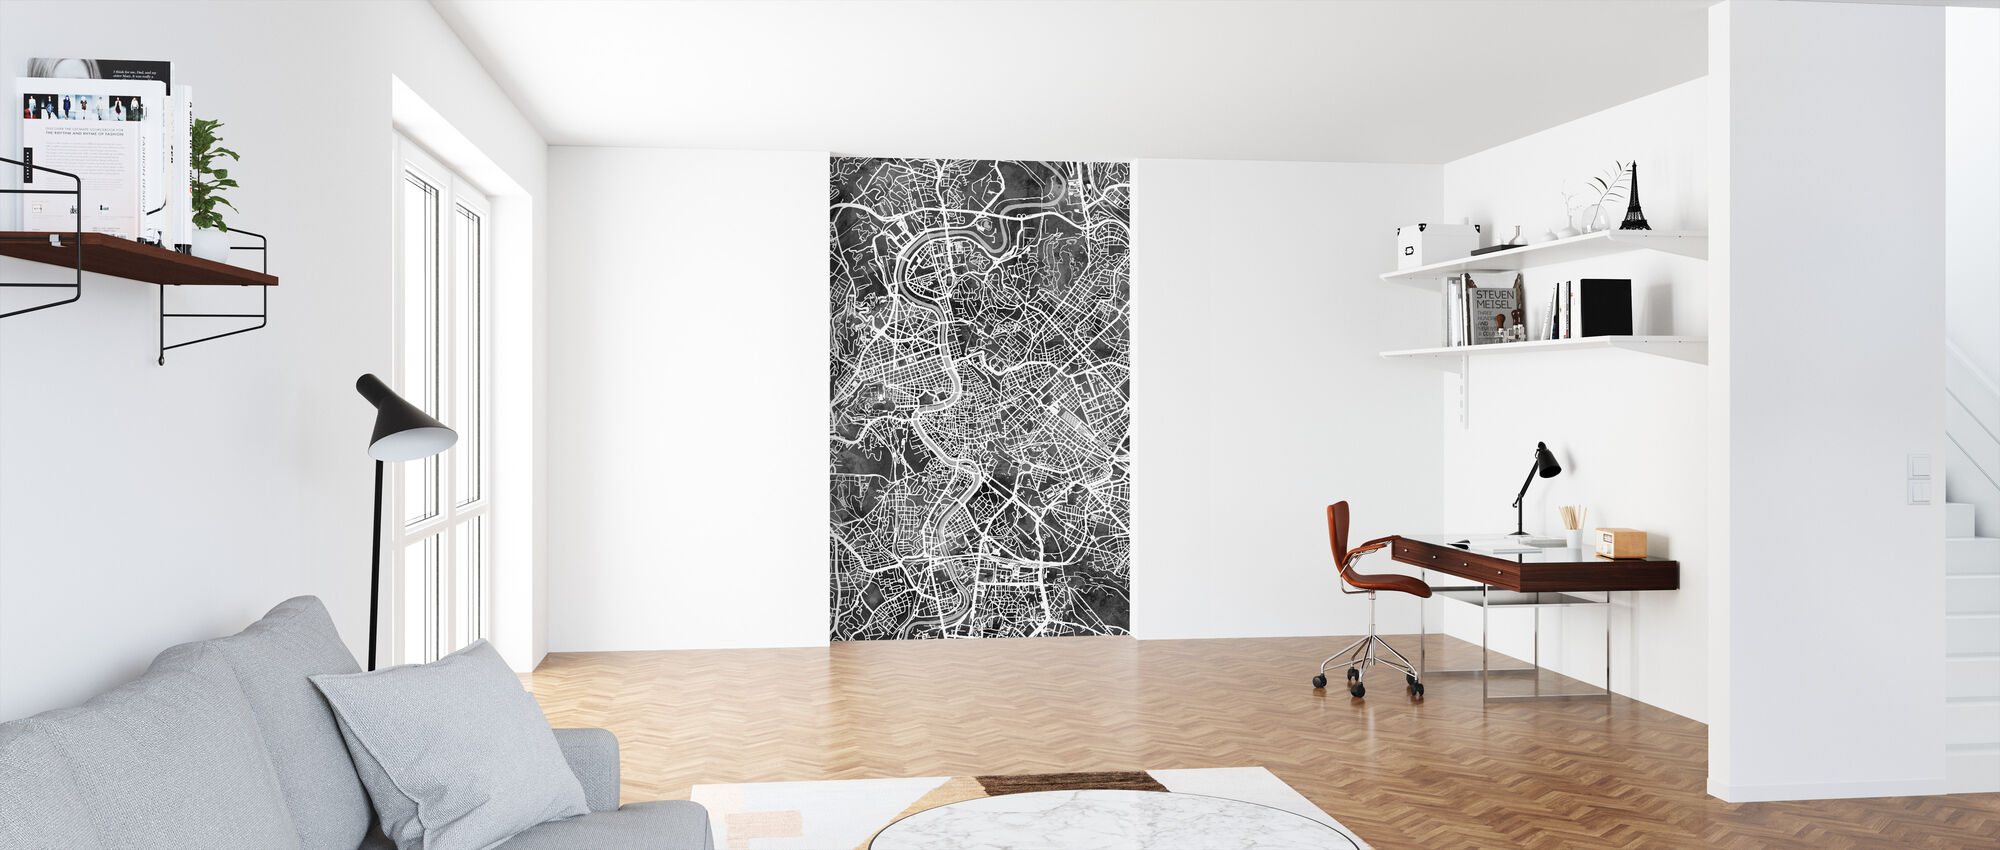 Rome Italy City Map - Wallpaper - Office